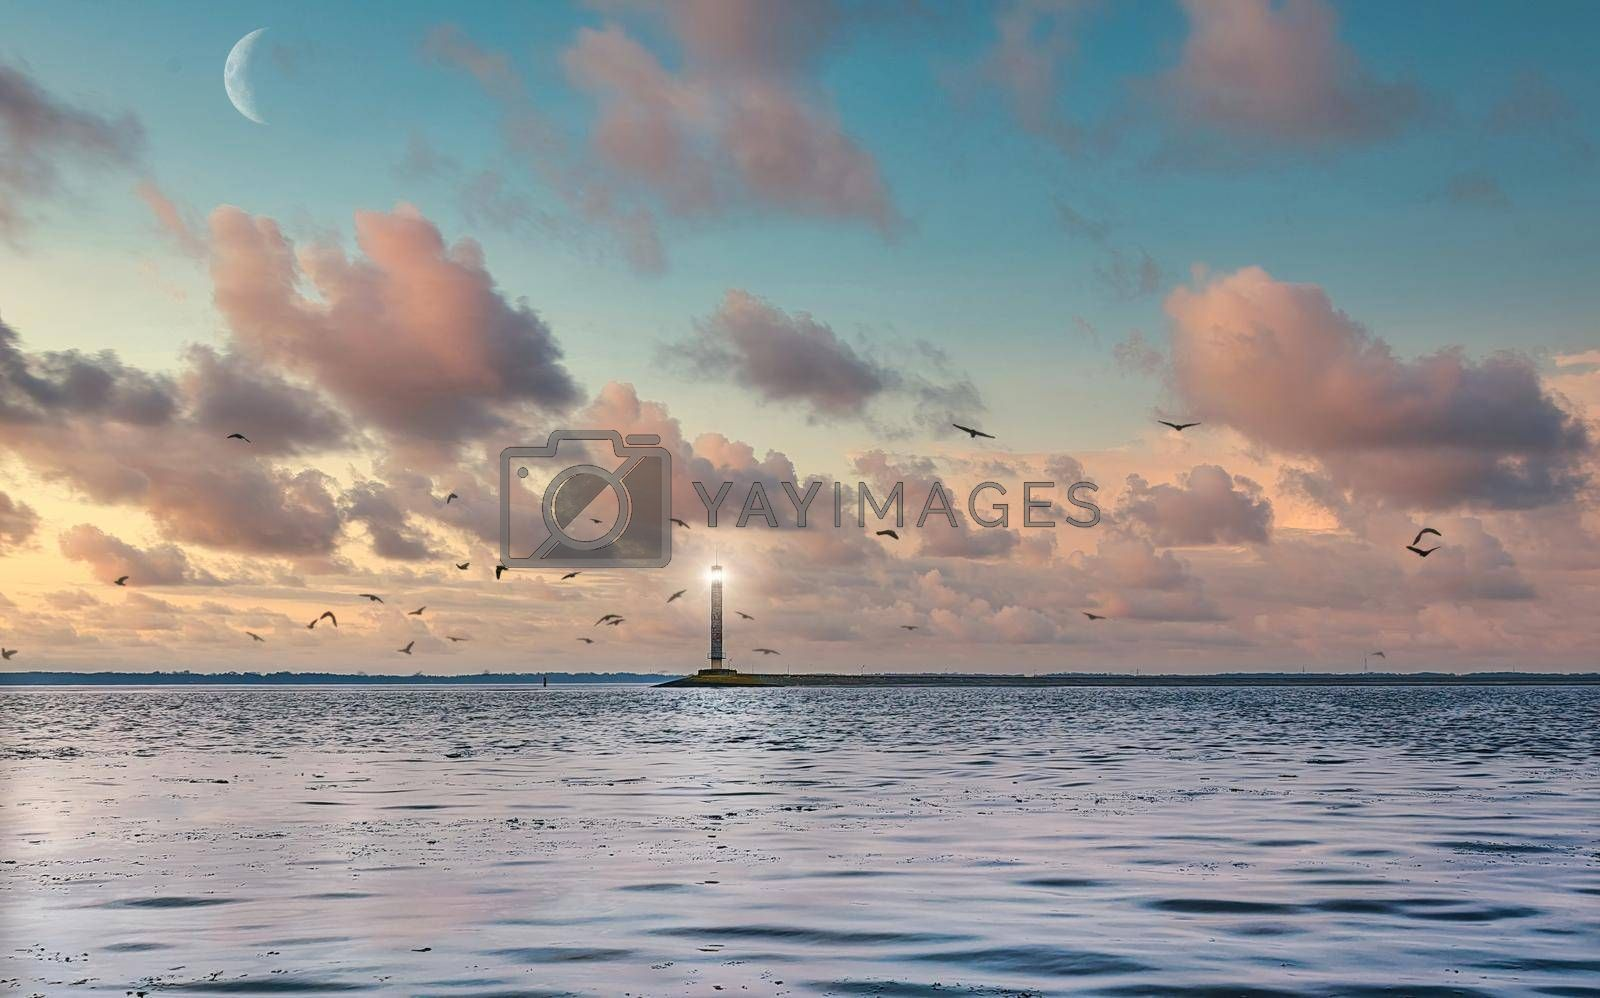 Royalty free image of White Beacon against the calm sea, cloudless evening sky. Seascape of Black sea. by Nickstock